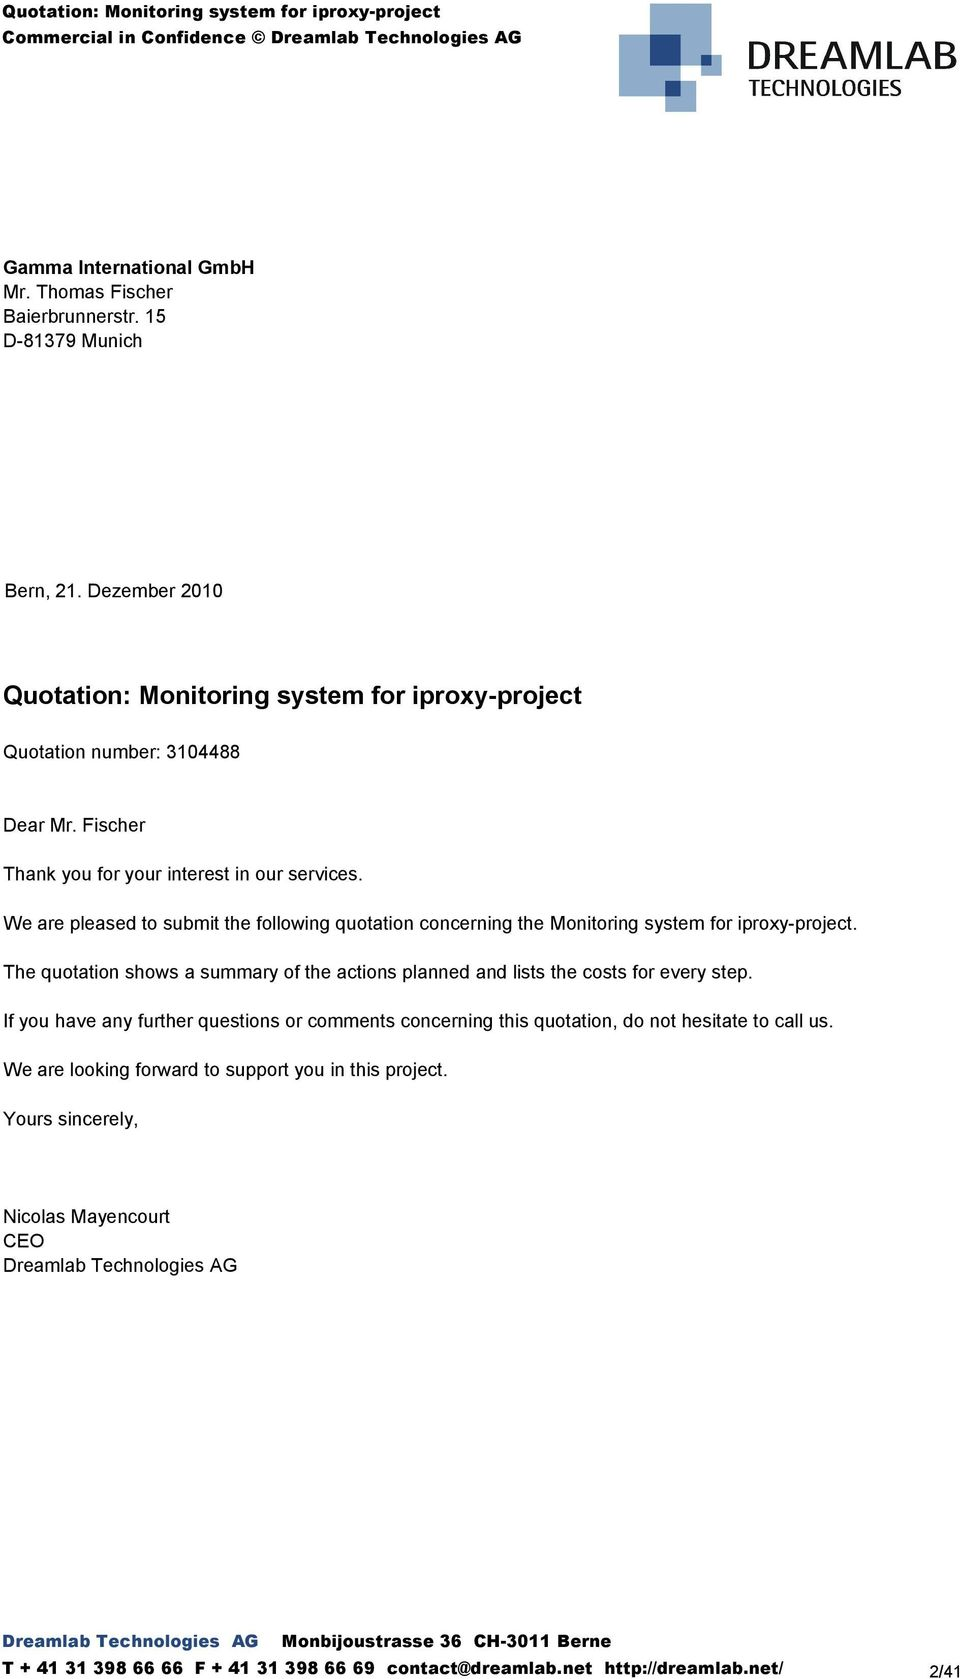 We are pleased to submit the following quotation concerning the Monitoring system for iproxy-project.